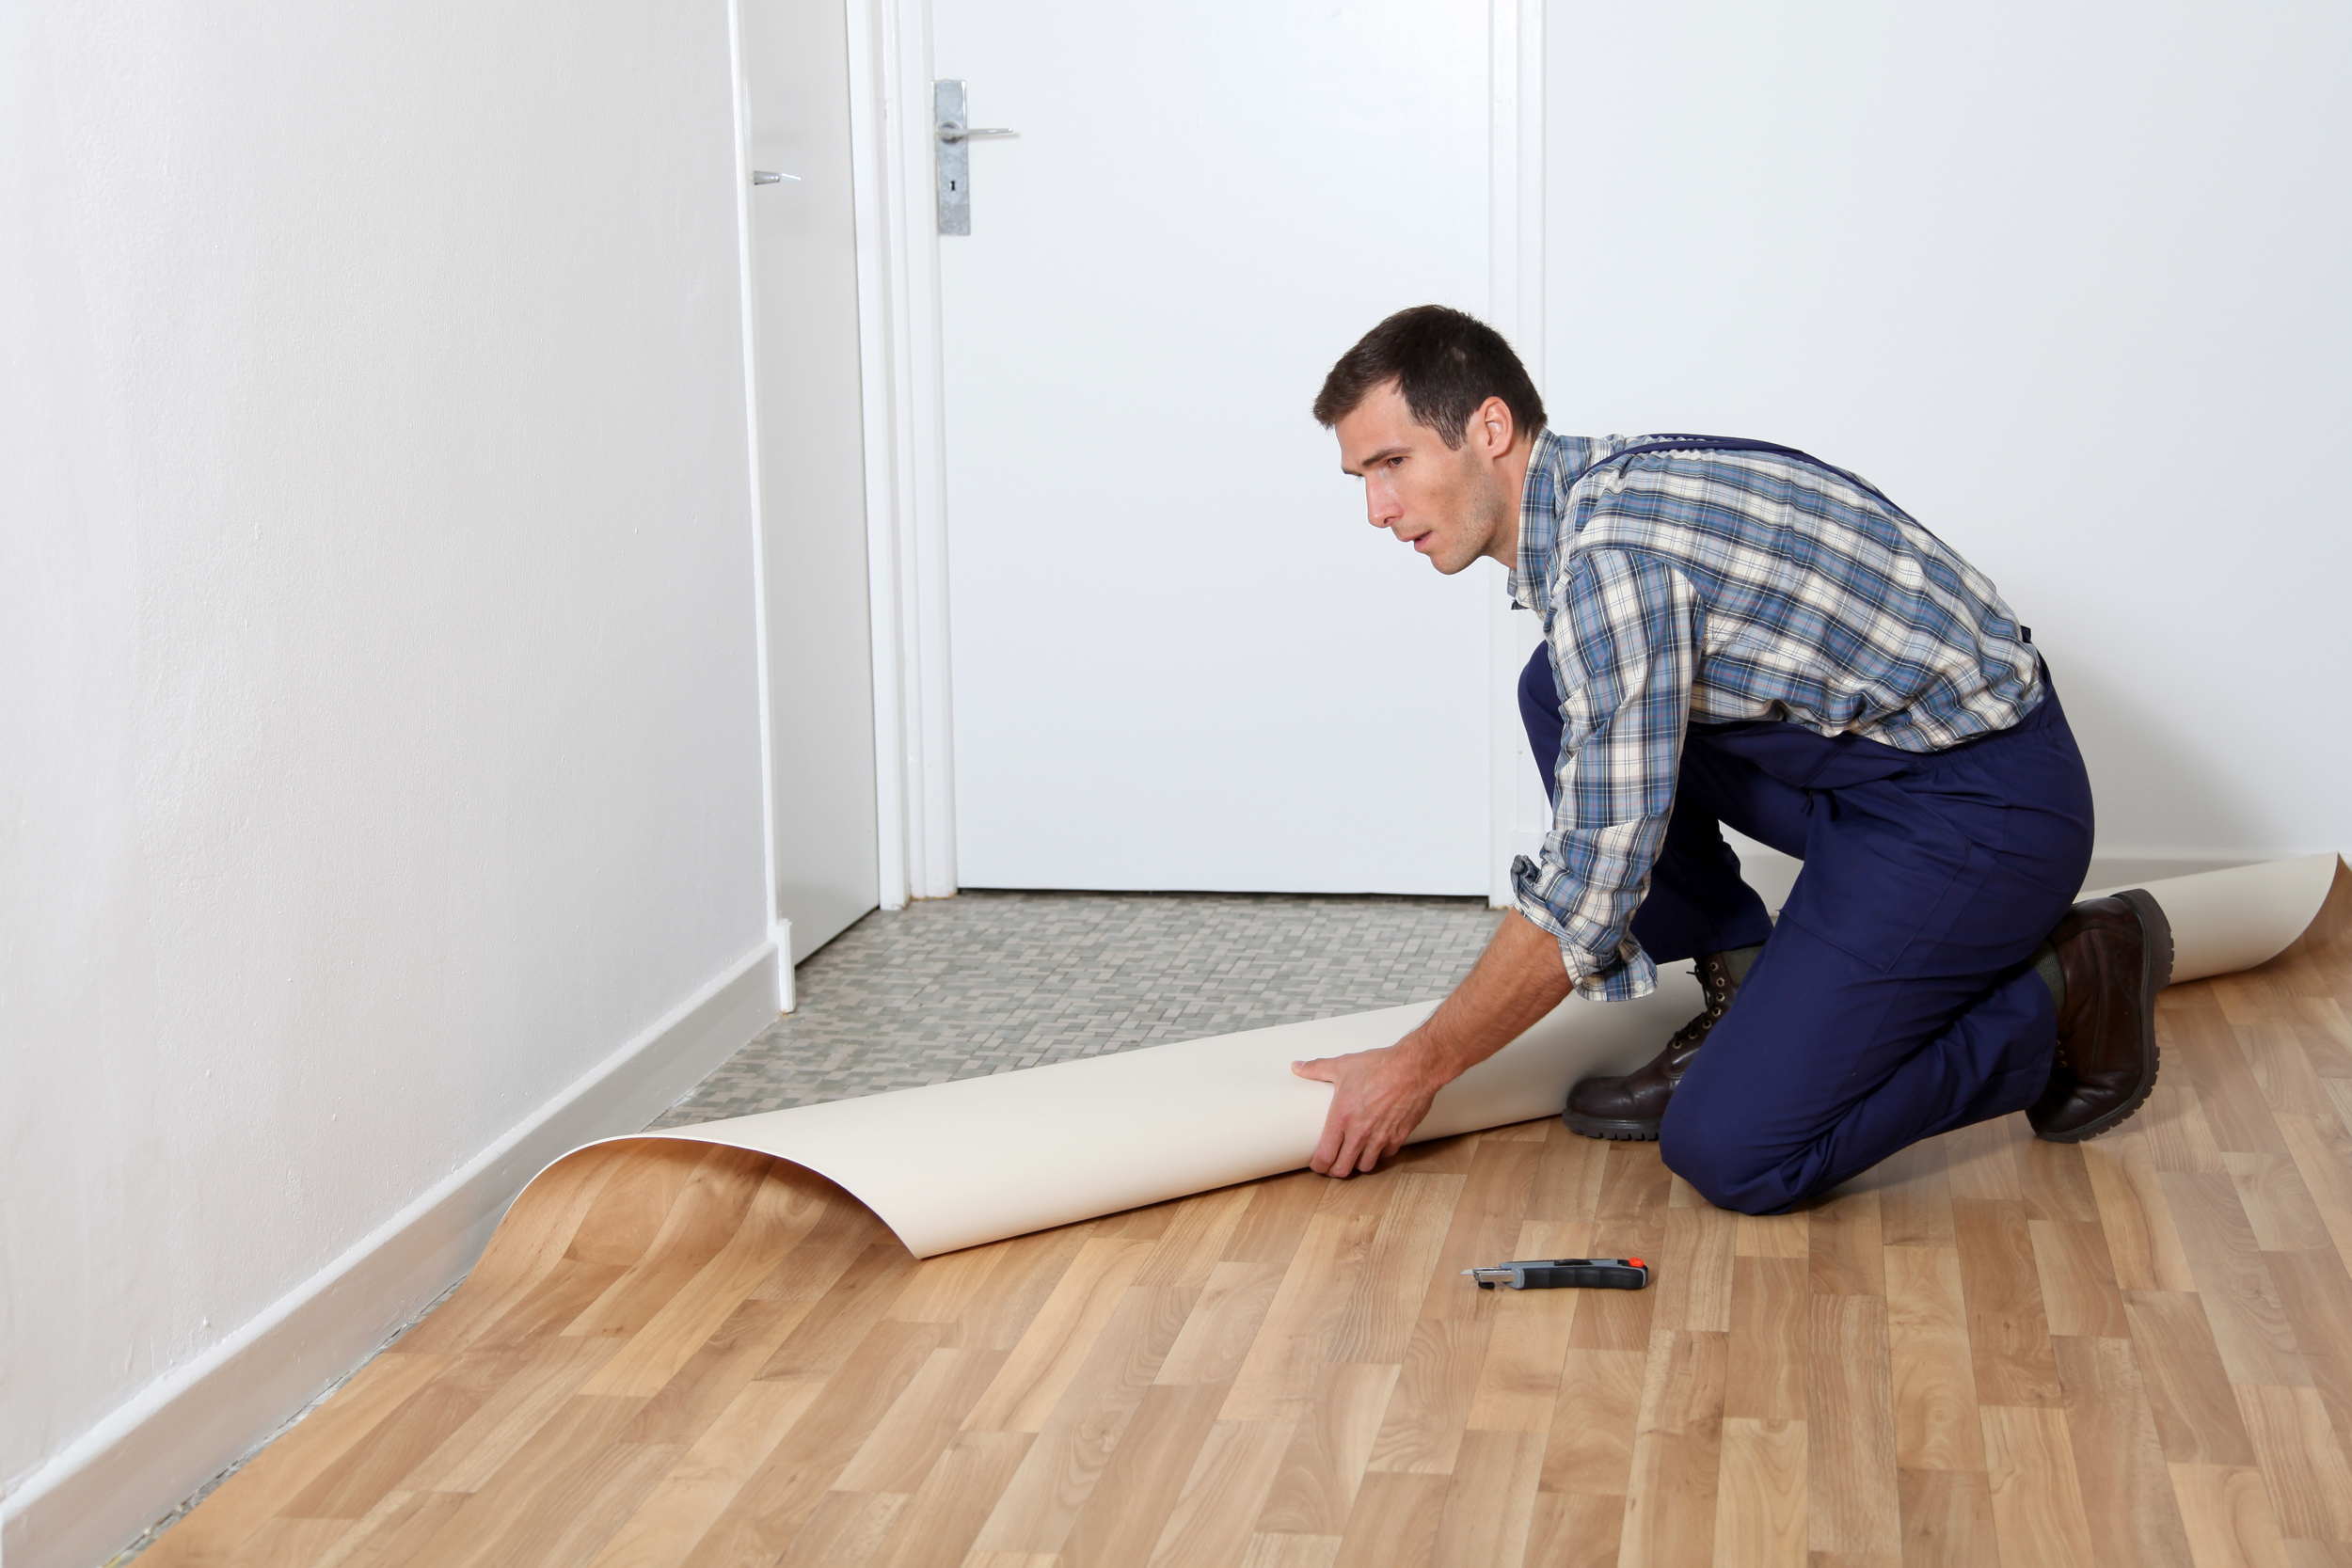 All Decor has qualified and experienced vinyl installers